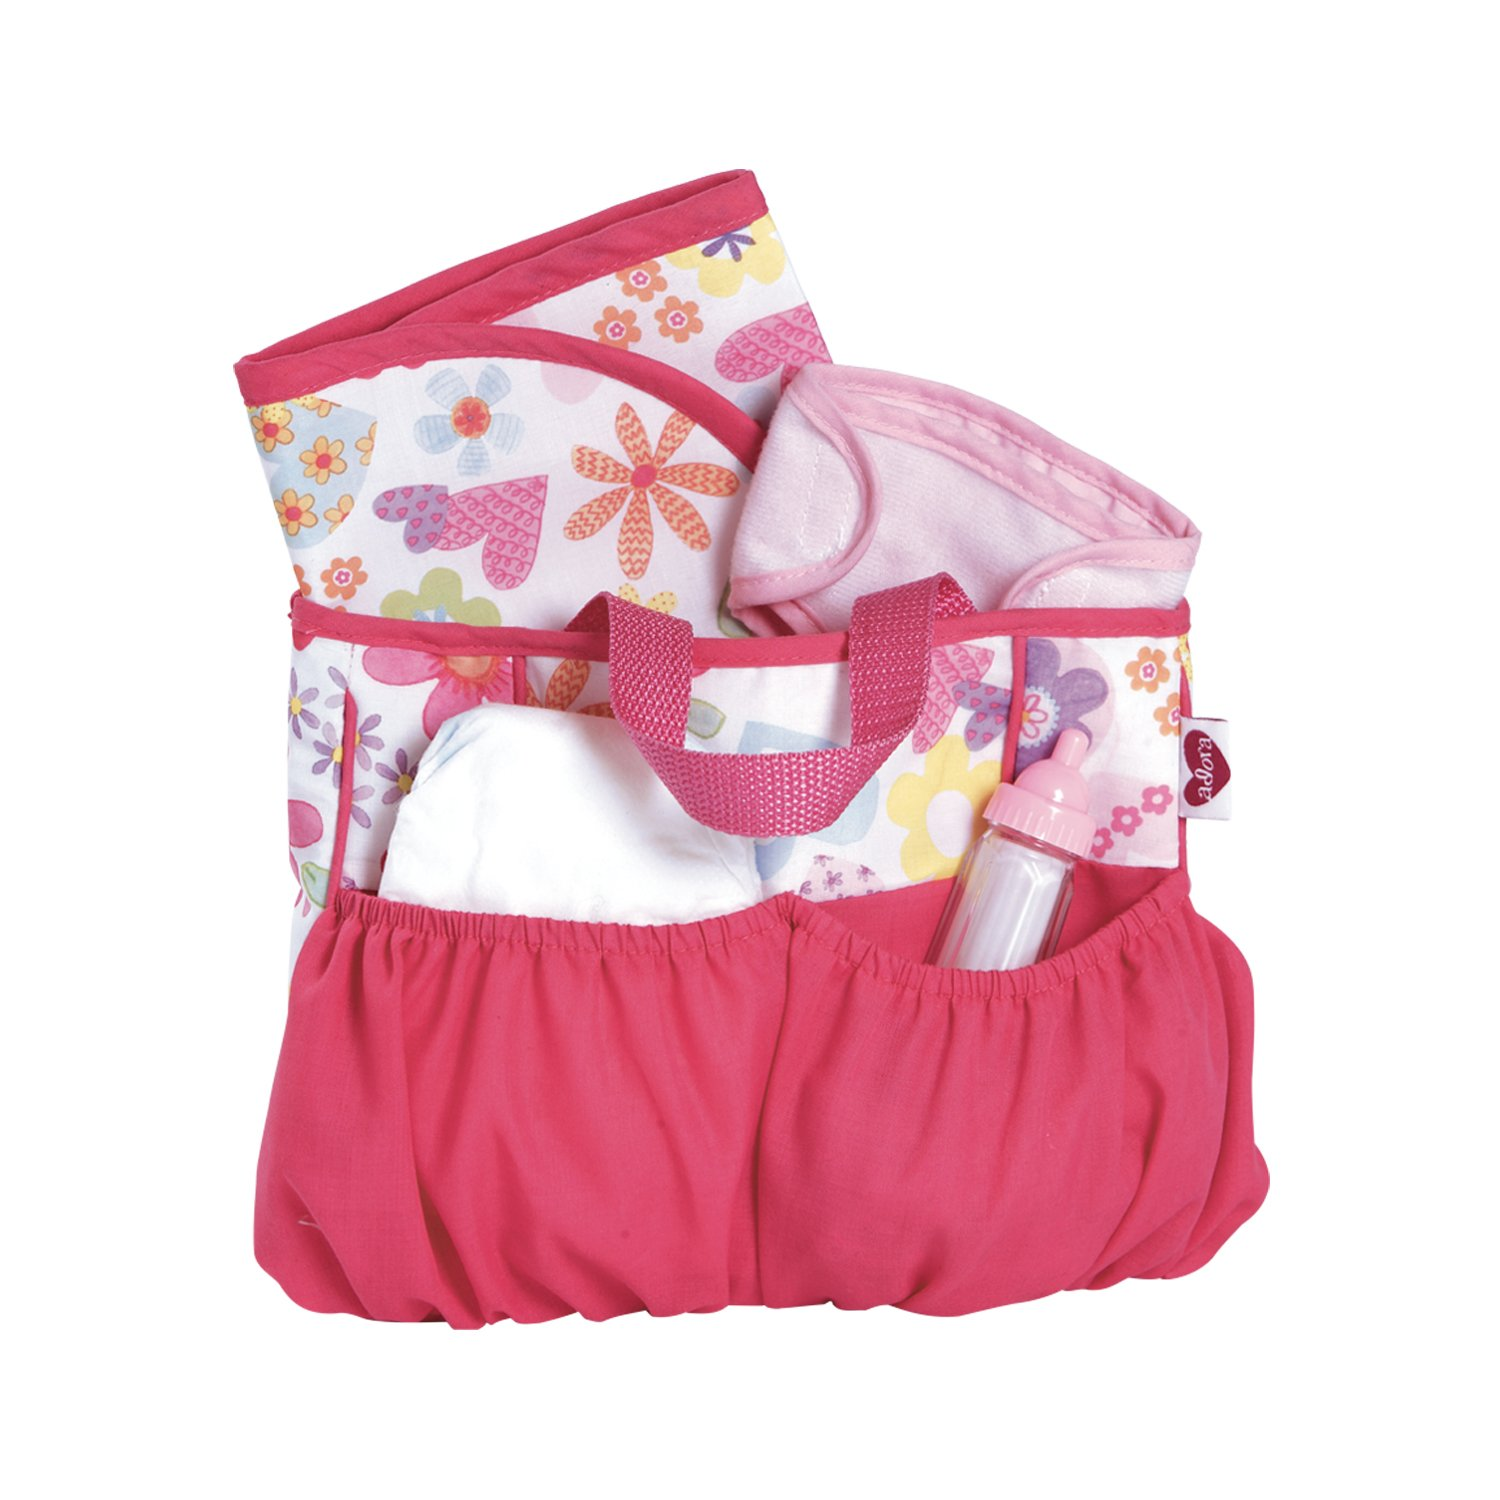 Adora Dolls Baby Dolls Diaper Bag with Accessories Changing Set (5-Piece) 20603021